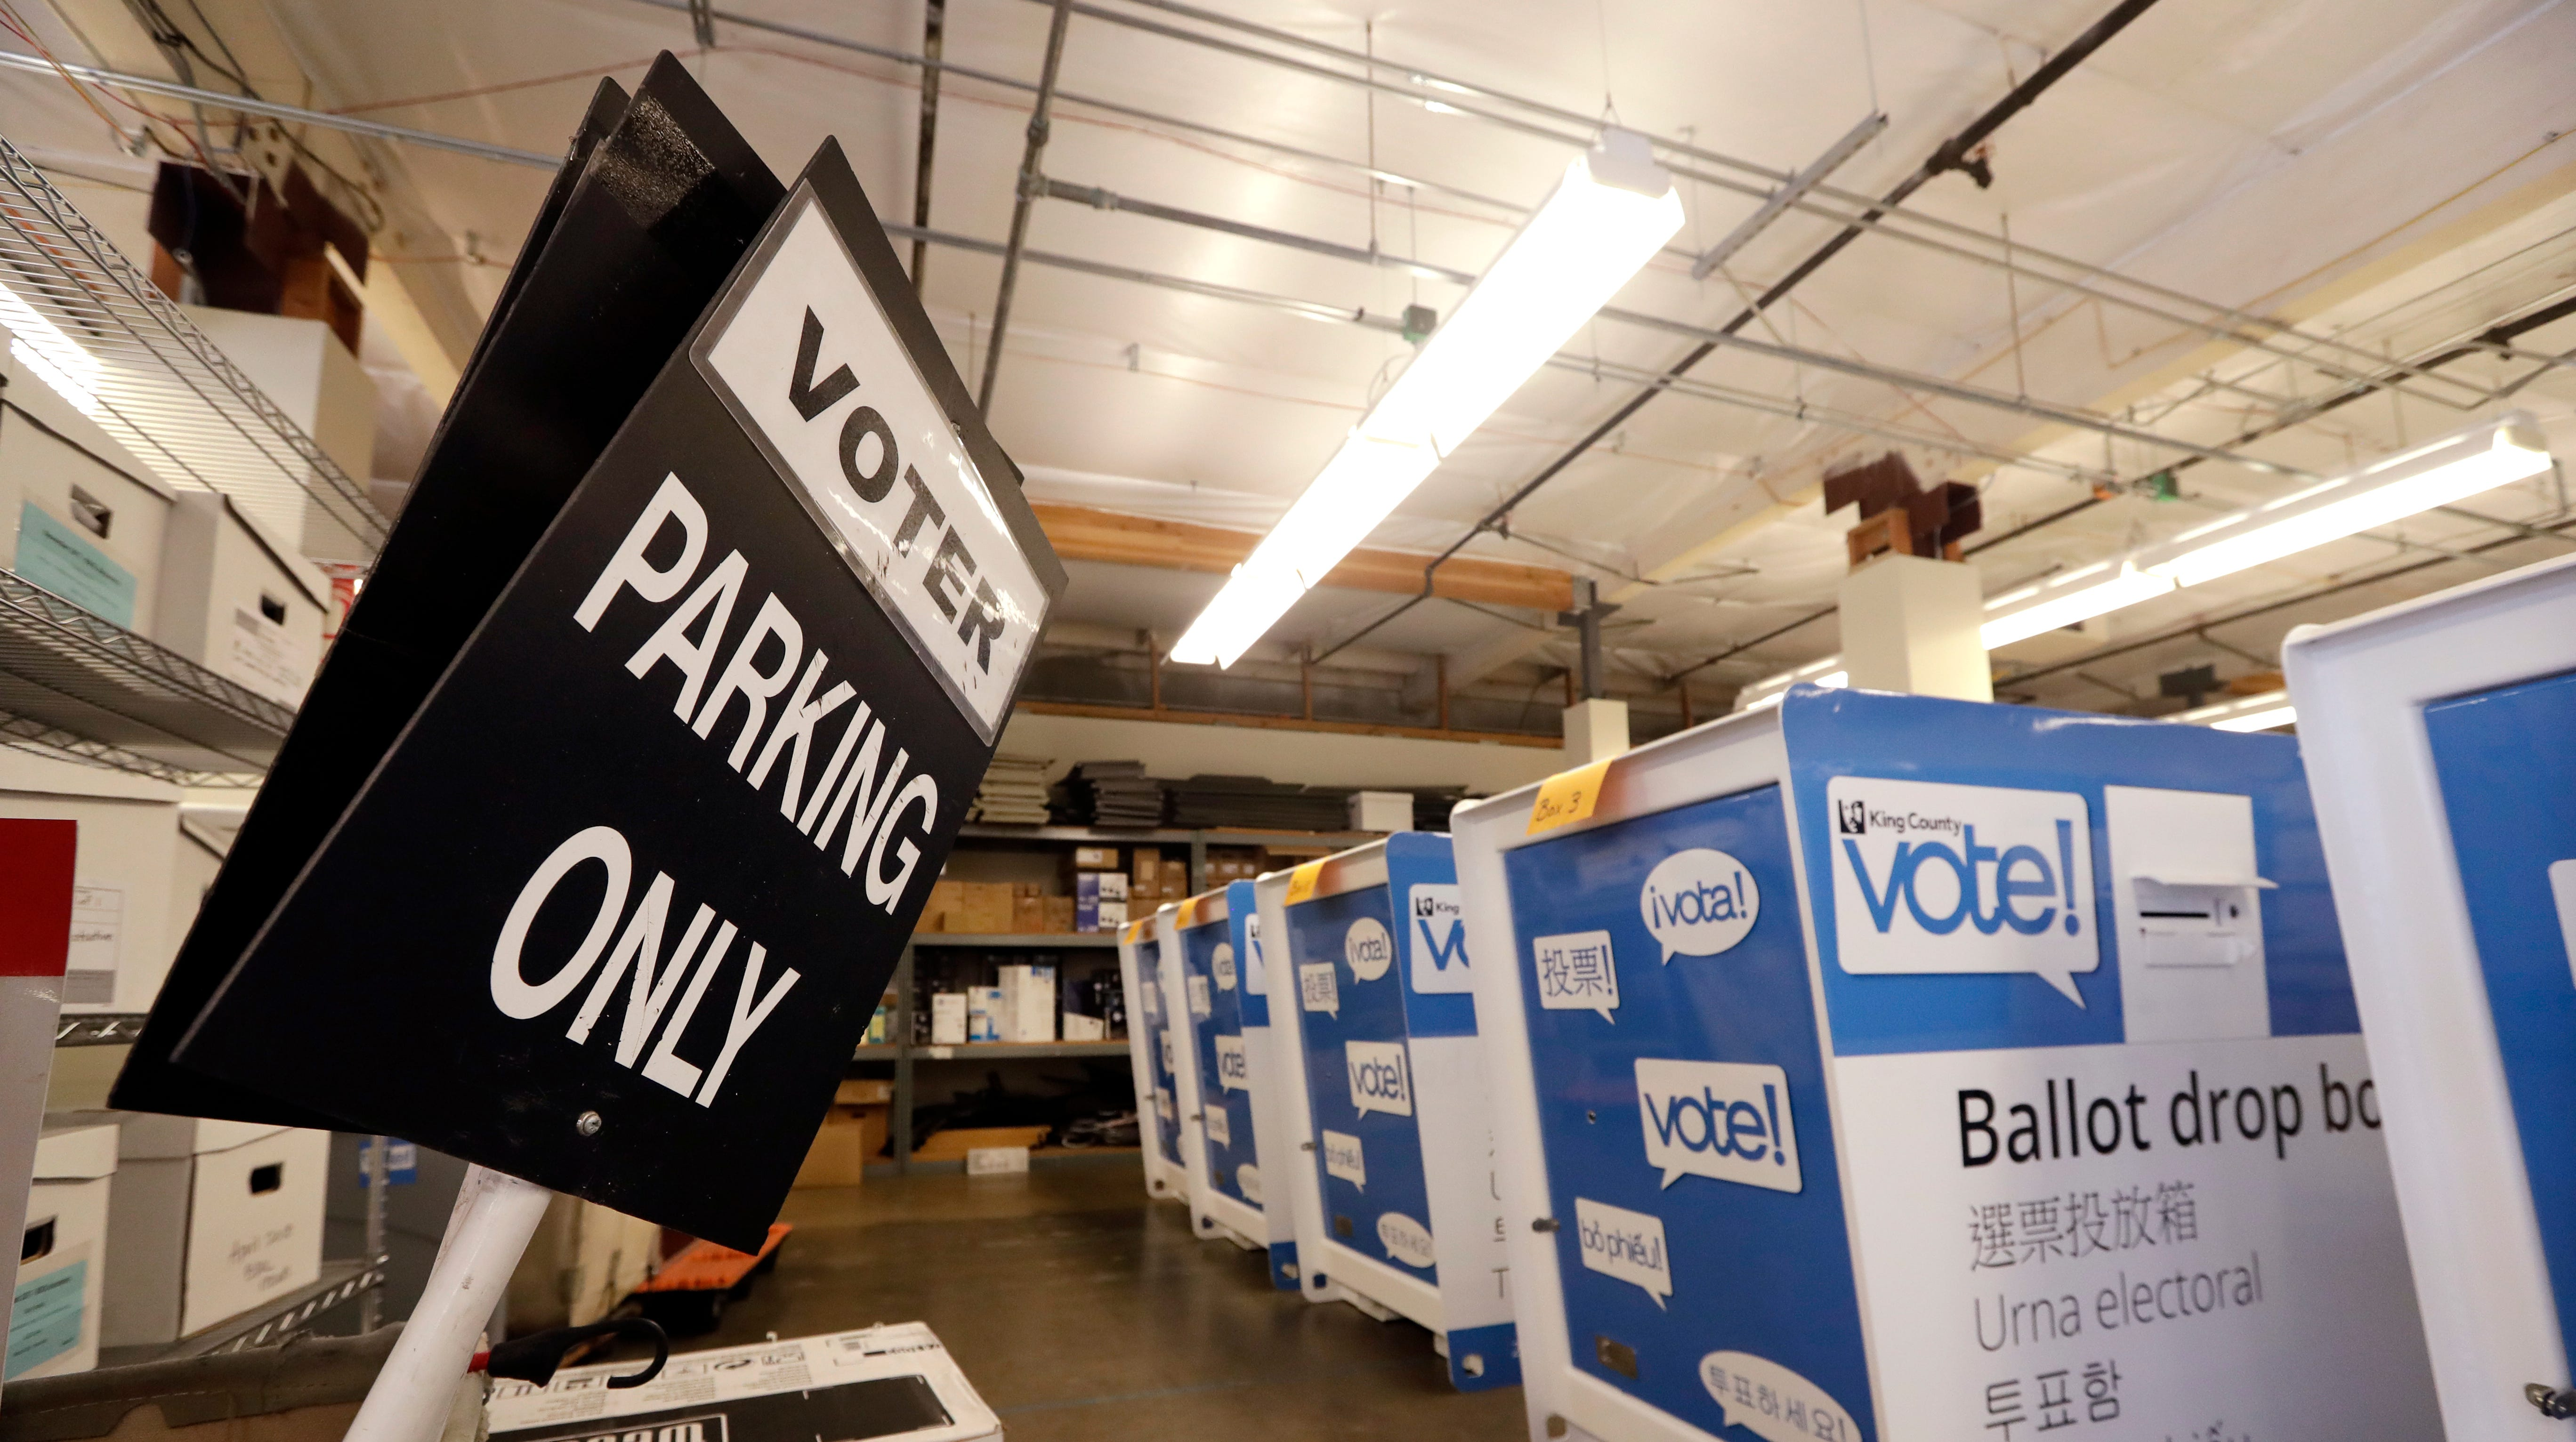 In this photo taken Sept. 19, 2018, ballot drop boxes are stored with other voting equipment in a warehouse portion of the King County Elections office in Renton, Wash.